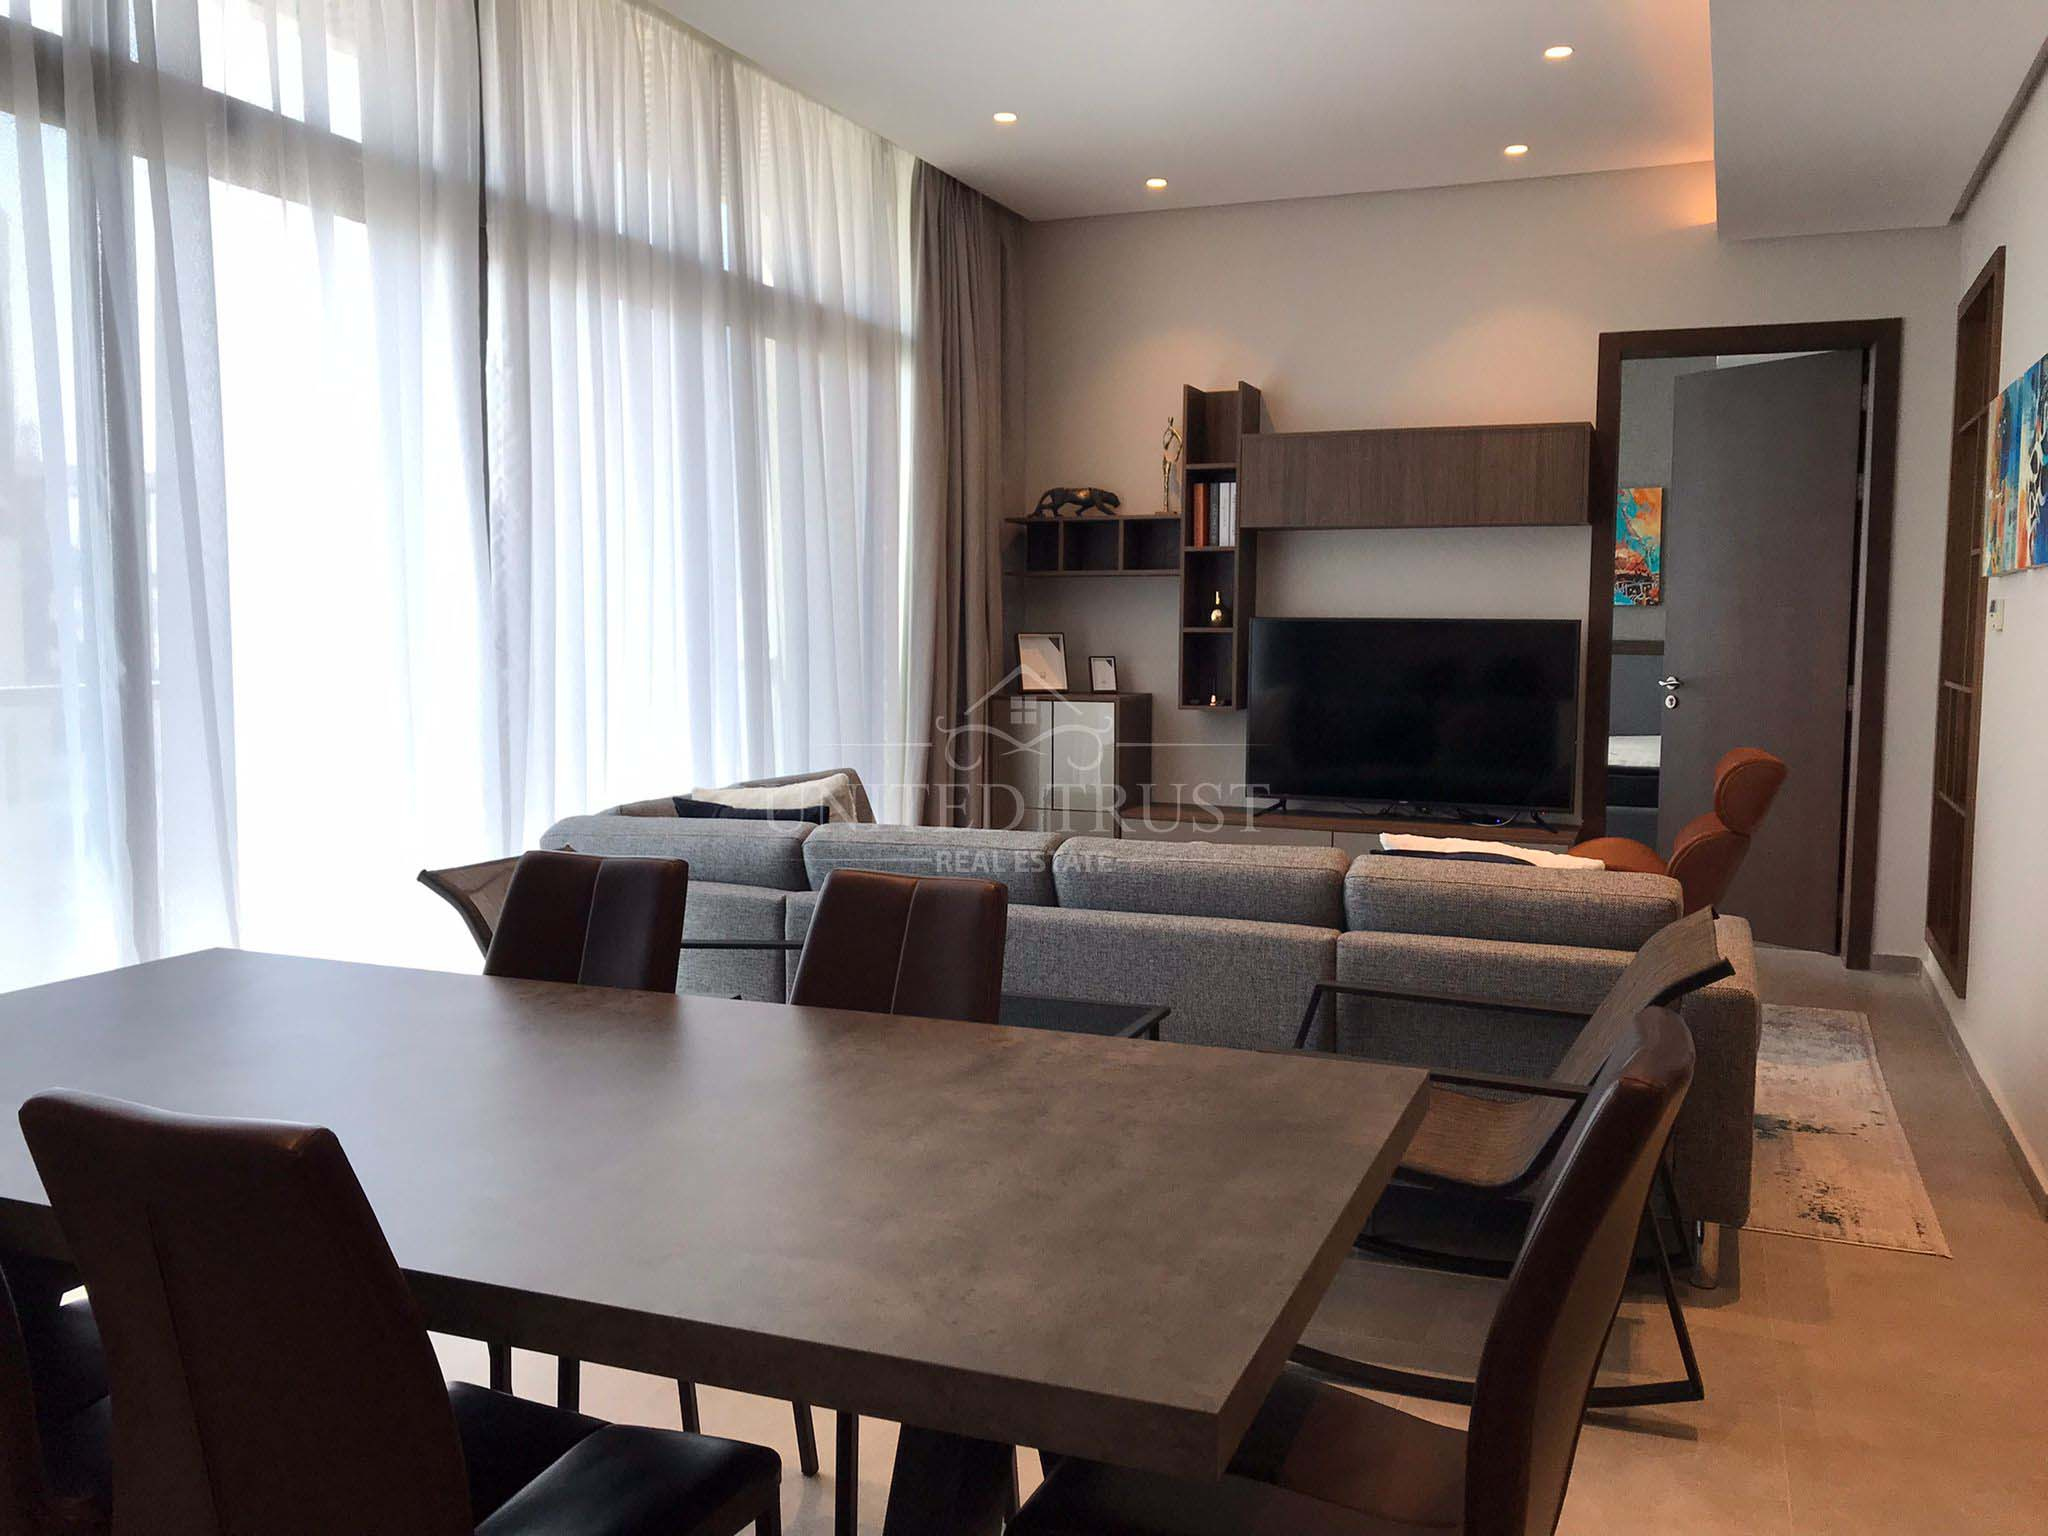 For rent a new furnished 3 bedrooms flat in Saar Ref: SAA-AZ-009